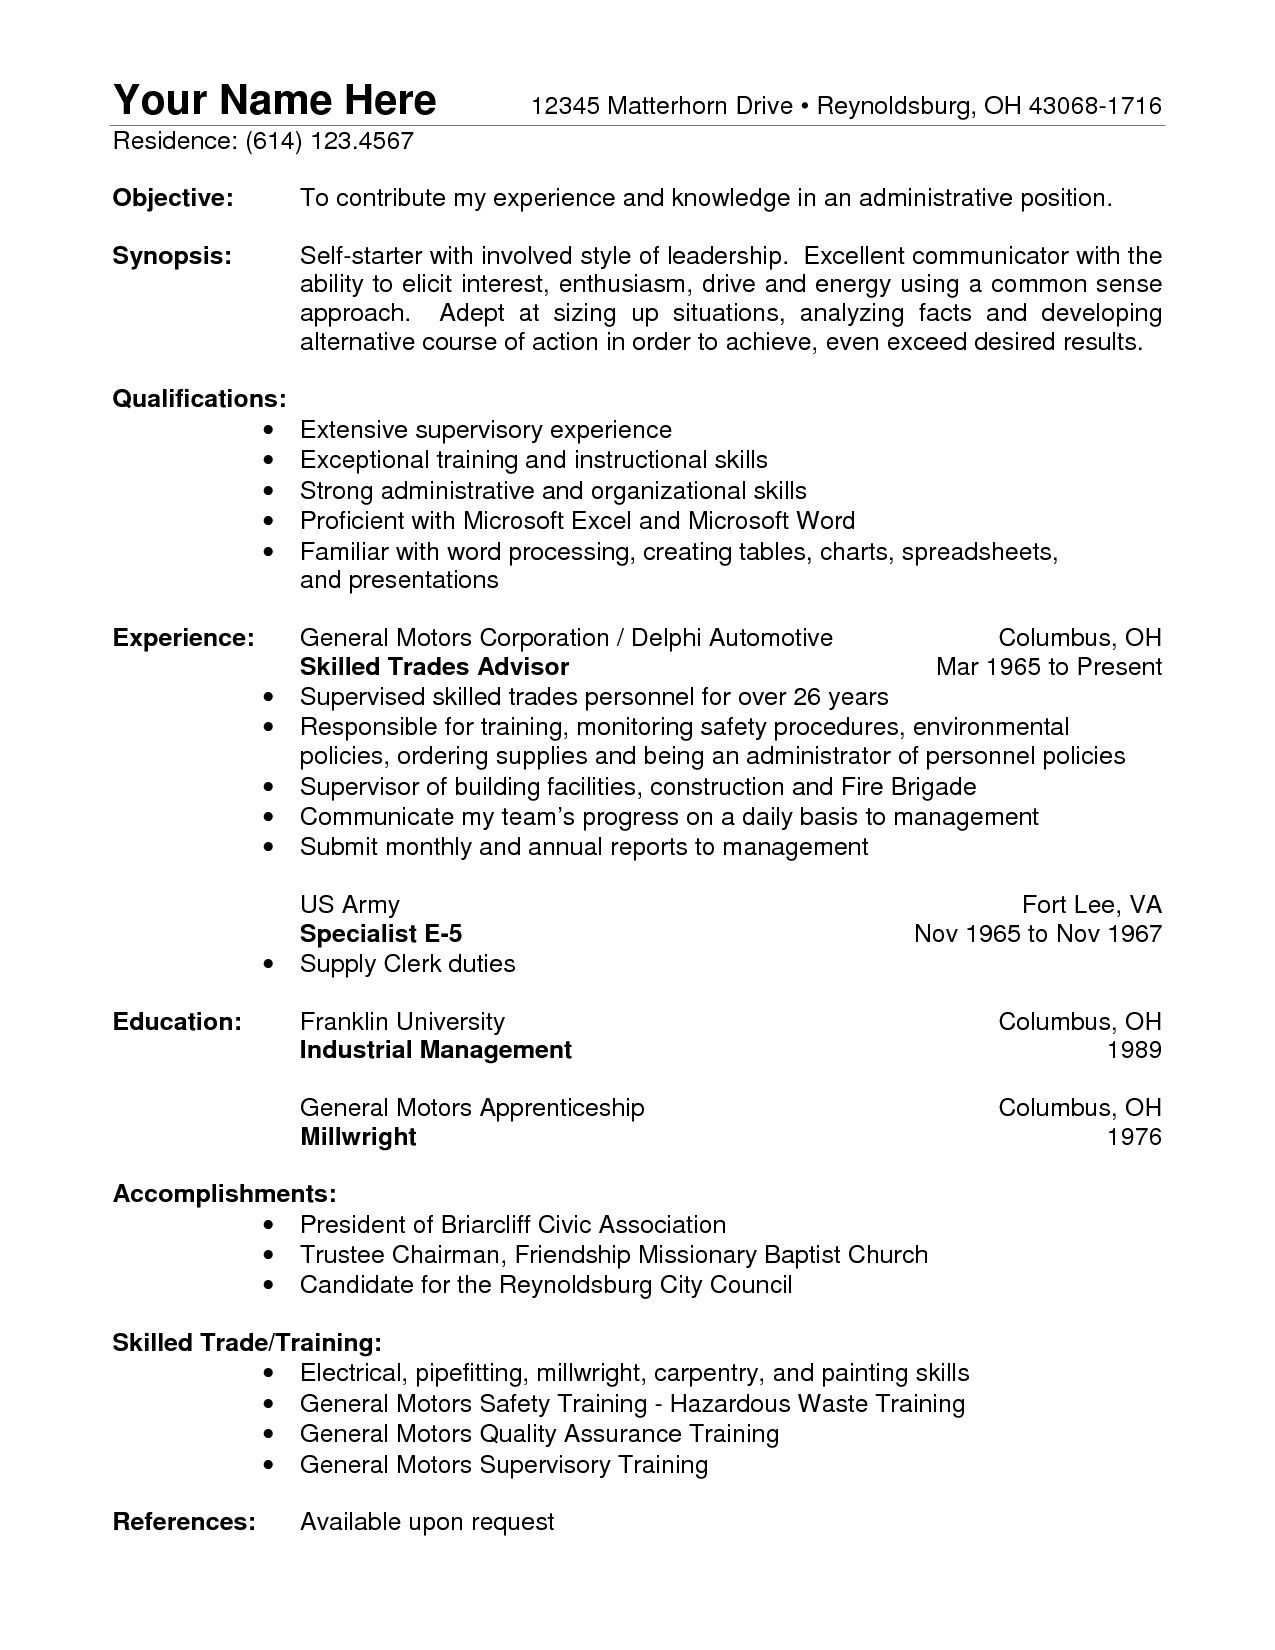 Pin By Carole Cuencas On Jobs Pinterest Warehouse Job Resume